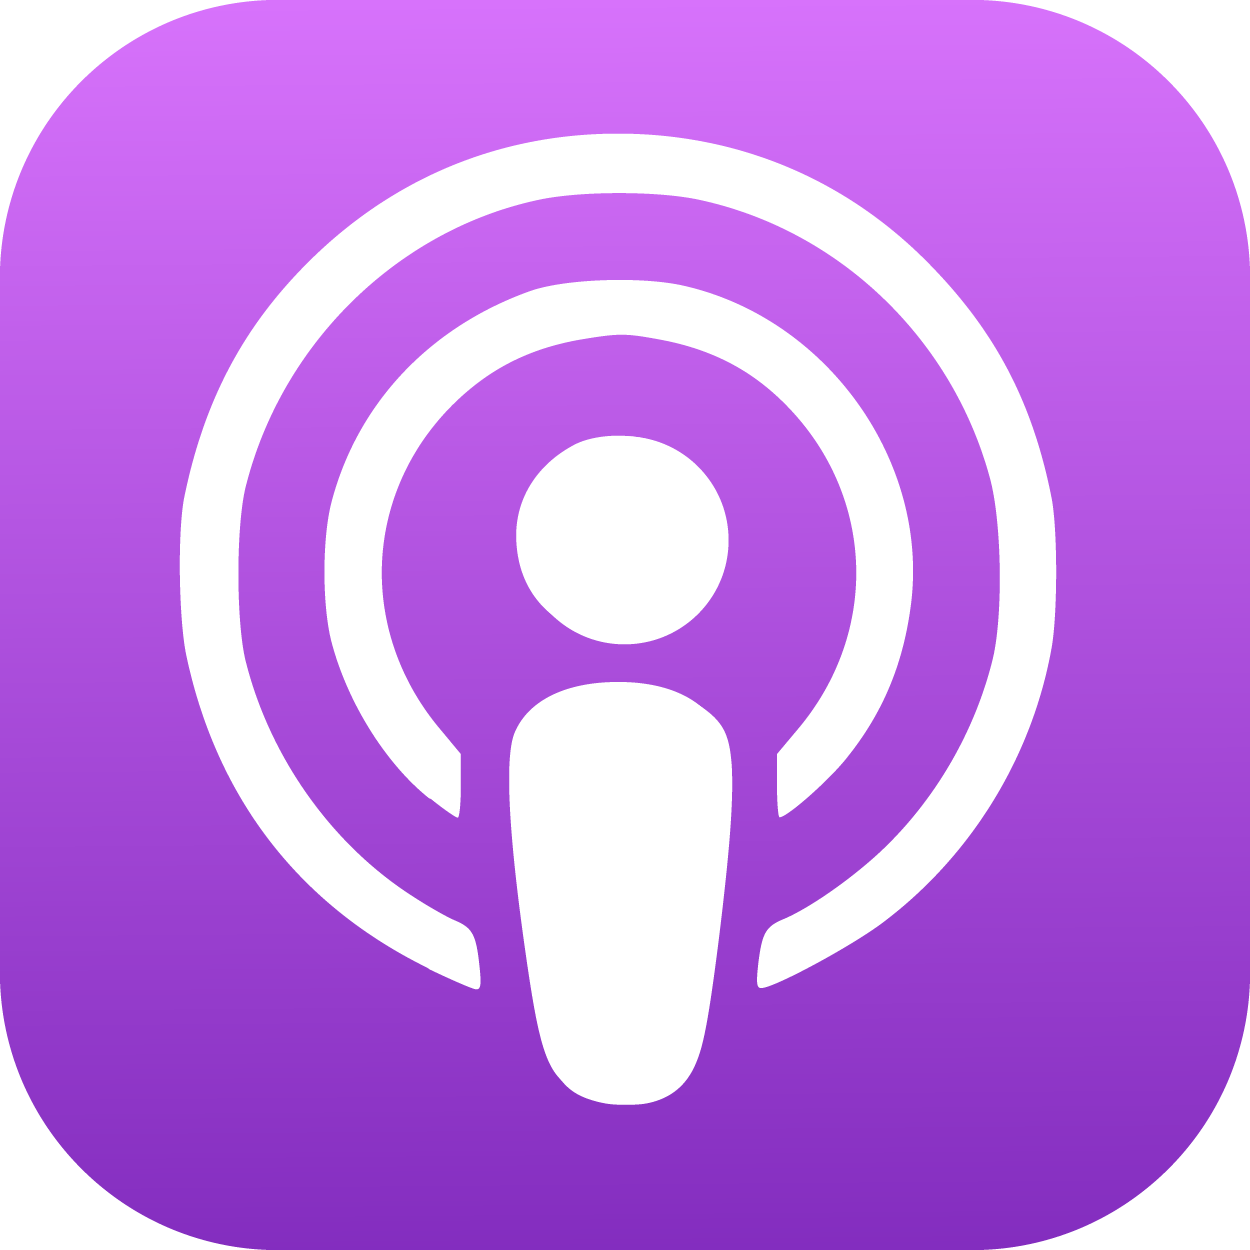 Listen to the podcast on Apple Podcasts